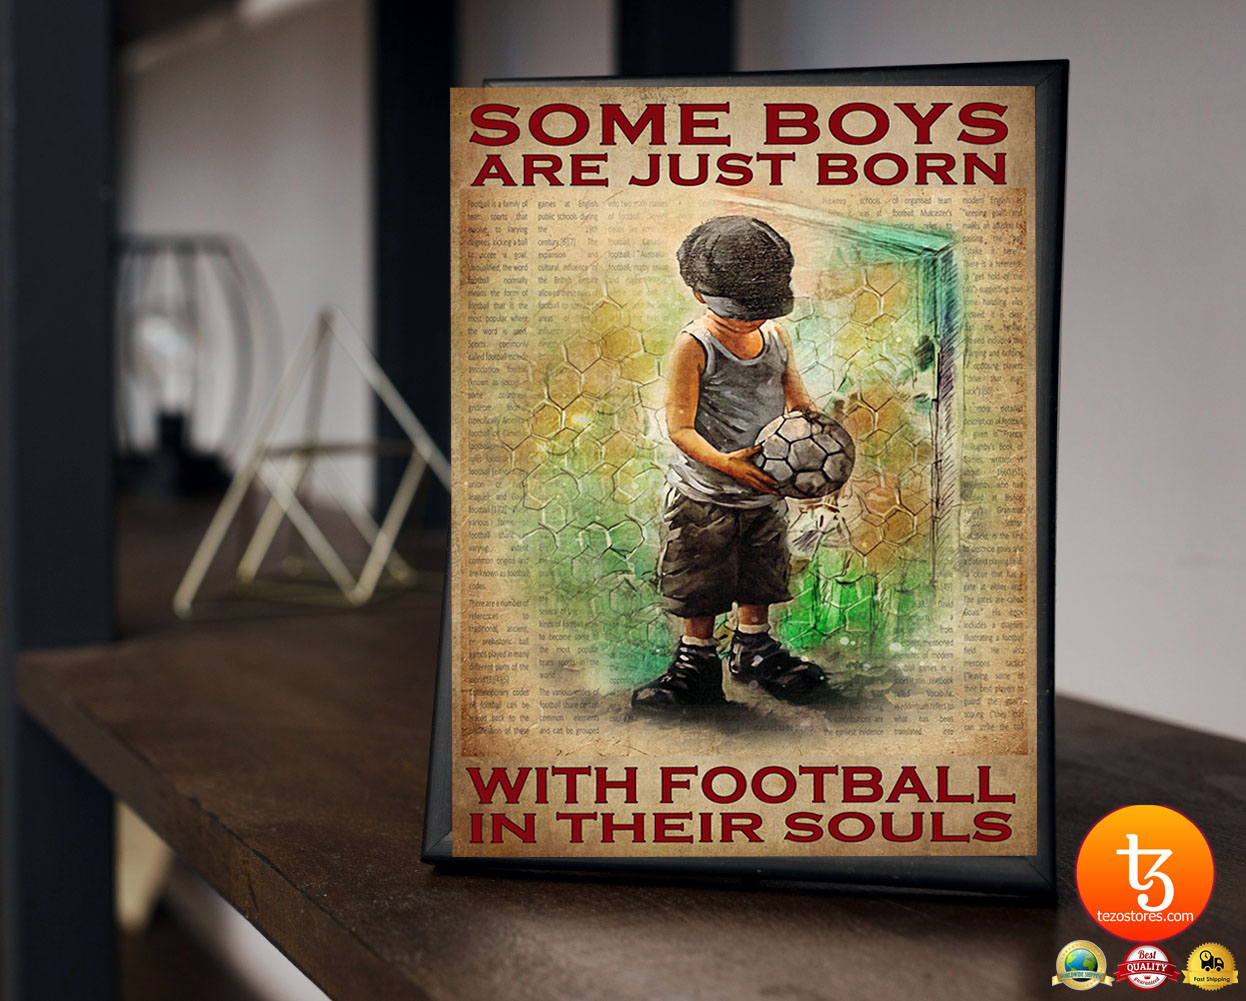 Some boys are just born with football in their souls poster 4